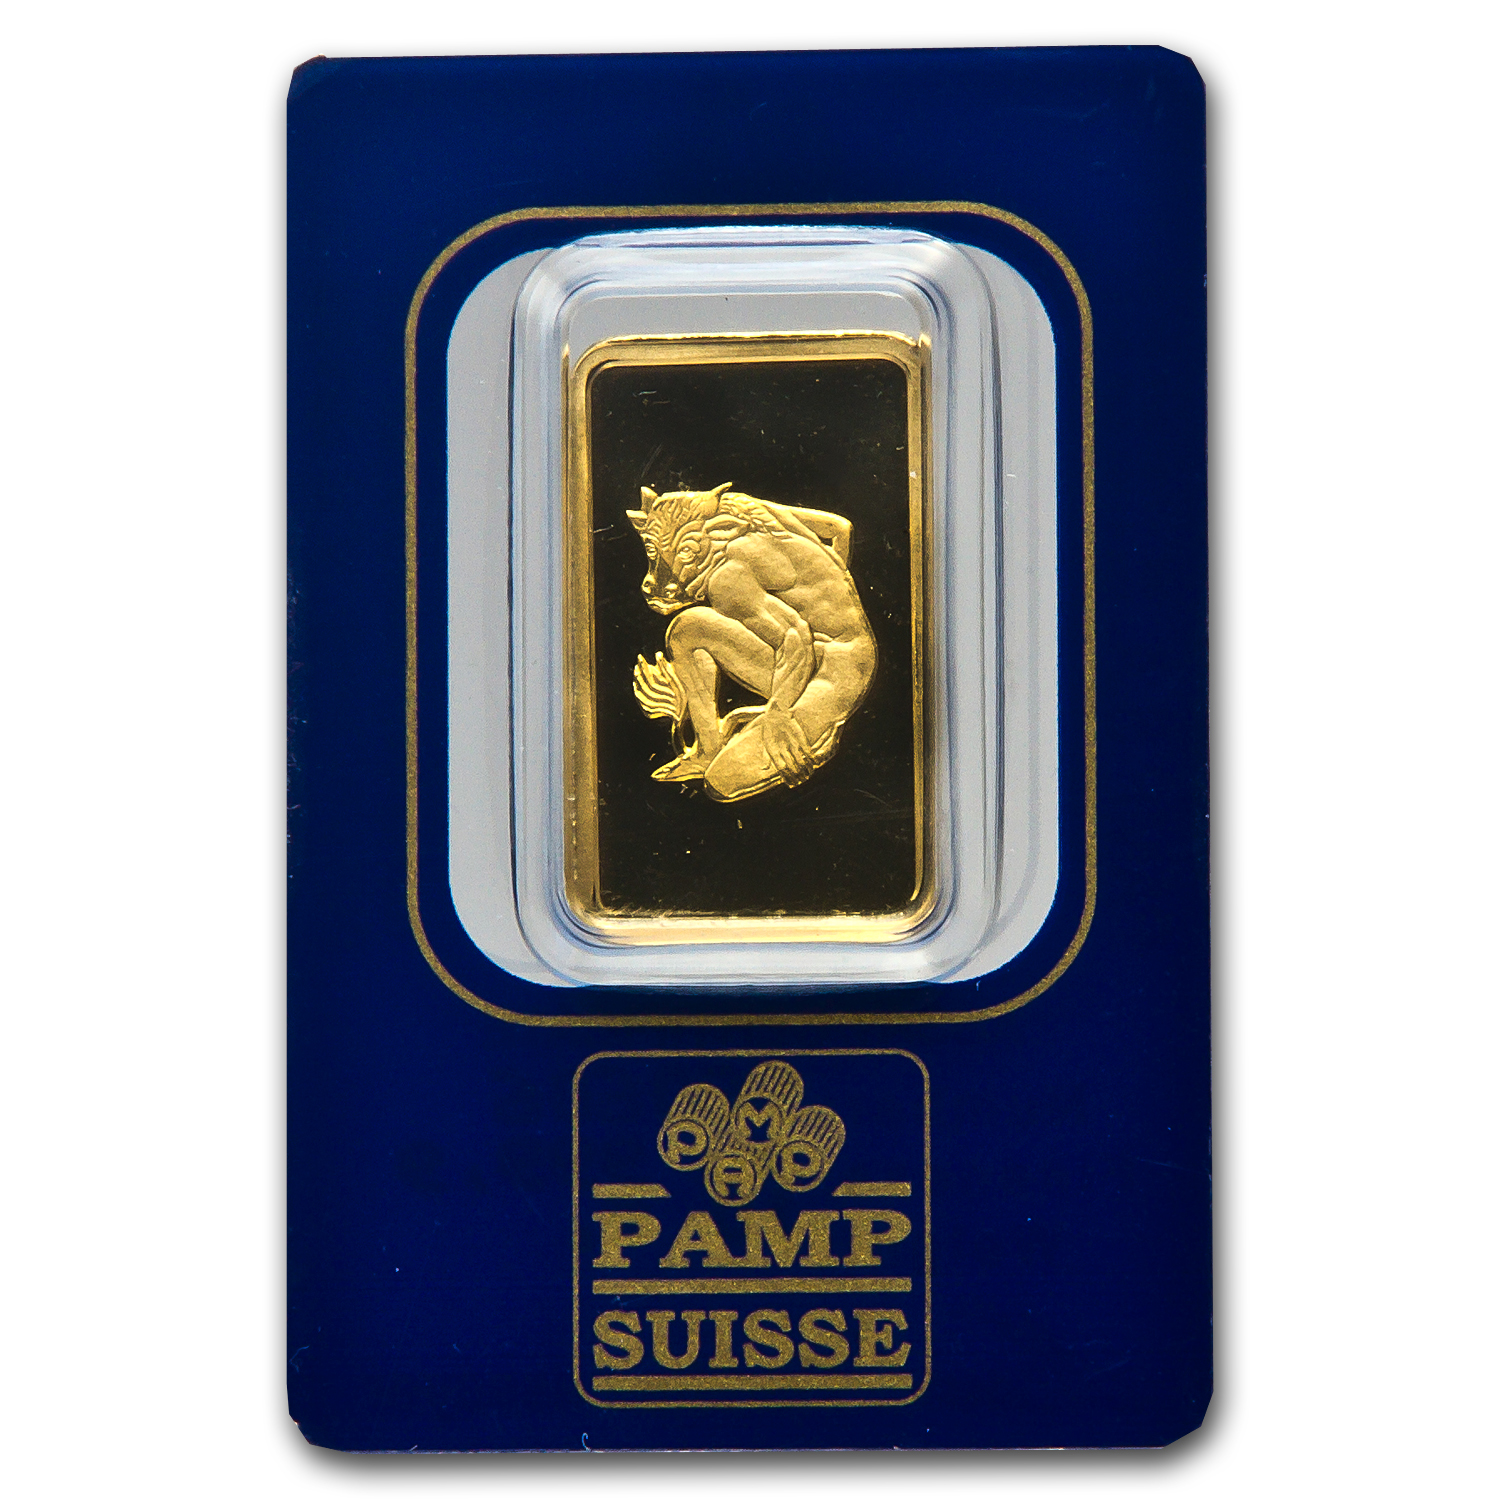 10 gram Gold Bars - Pamp Suisse (Taurus the Bull, in assay)